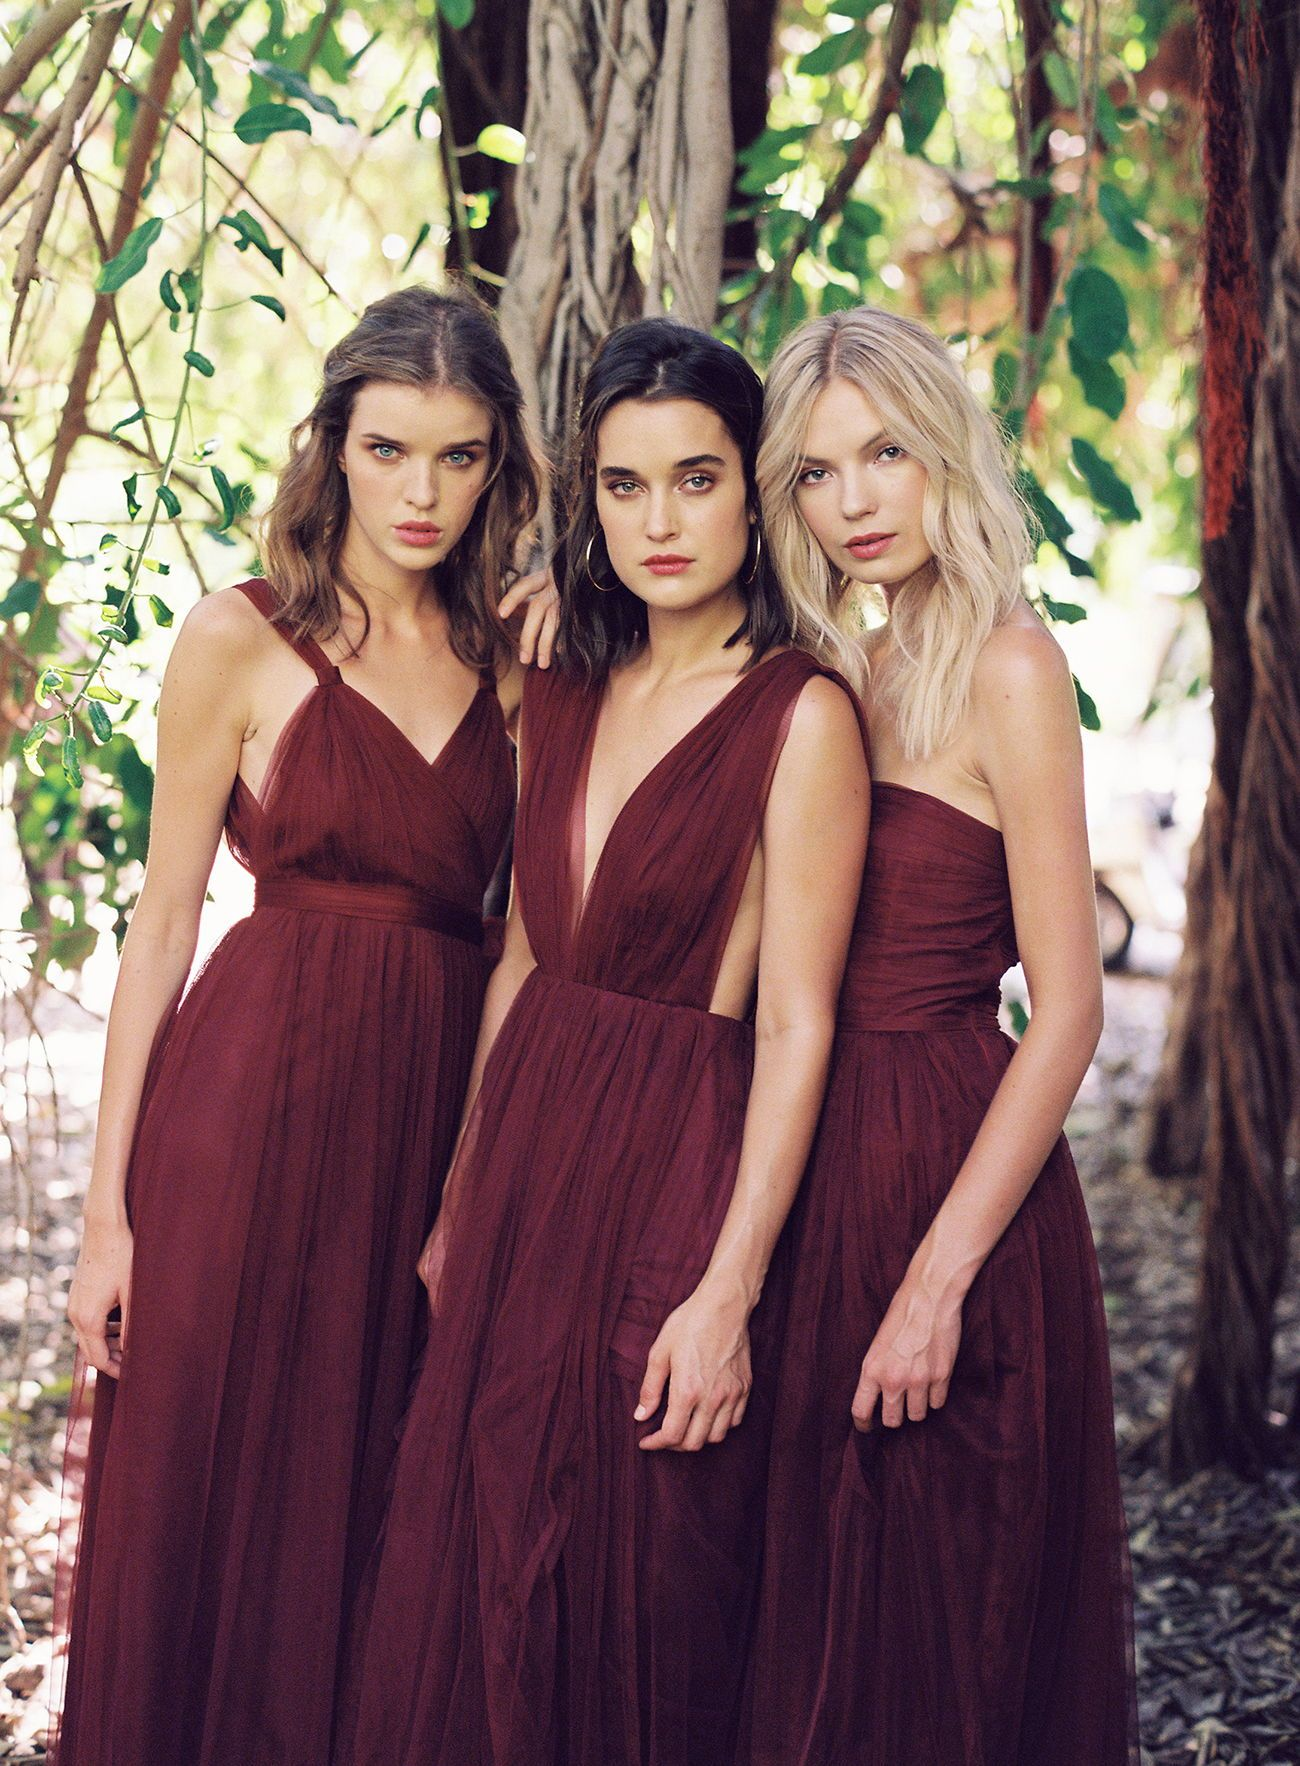 Maroon bridesmaids dresses by joanna august maroonbridesmaids maroon bridesmaids dresses by joanna august maroonbridesmaids bridesmaidideas joannaaugust ombrellifo Choice Image